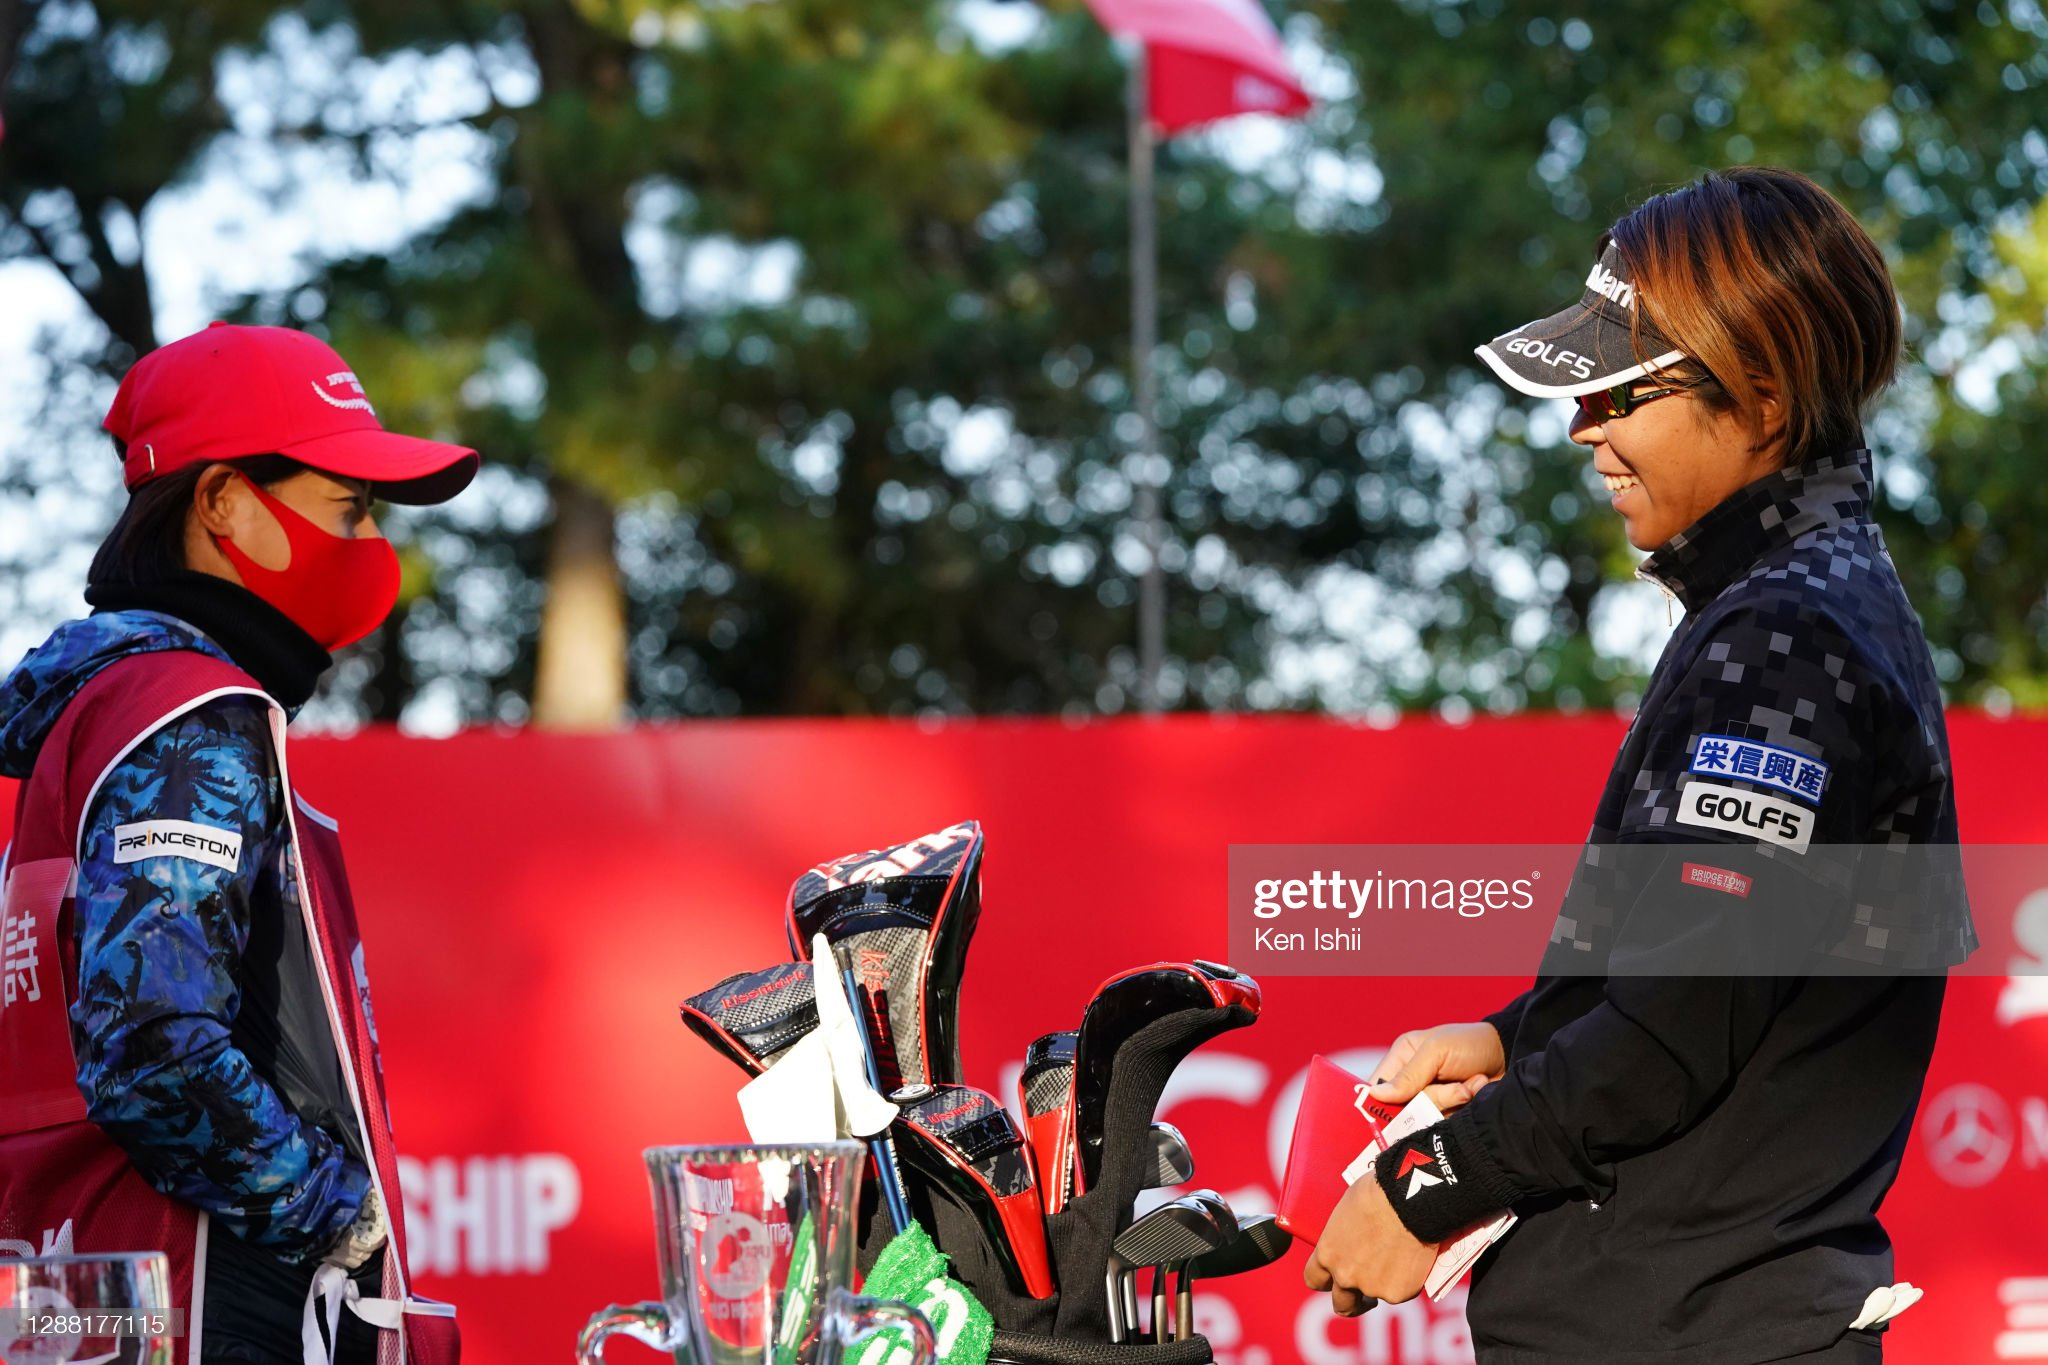 https://media.gettyimages.com/photos/lala-anai-of-japan-talks-with-her-caddie-on-the-1st-tee-during-the-picture-id1288177115?s=2048x2048